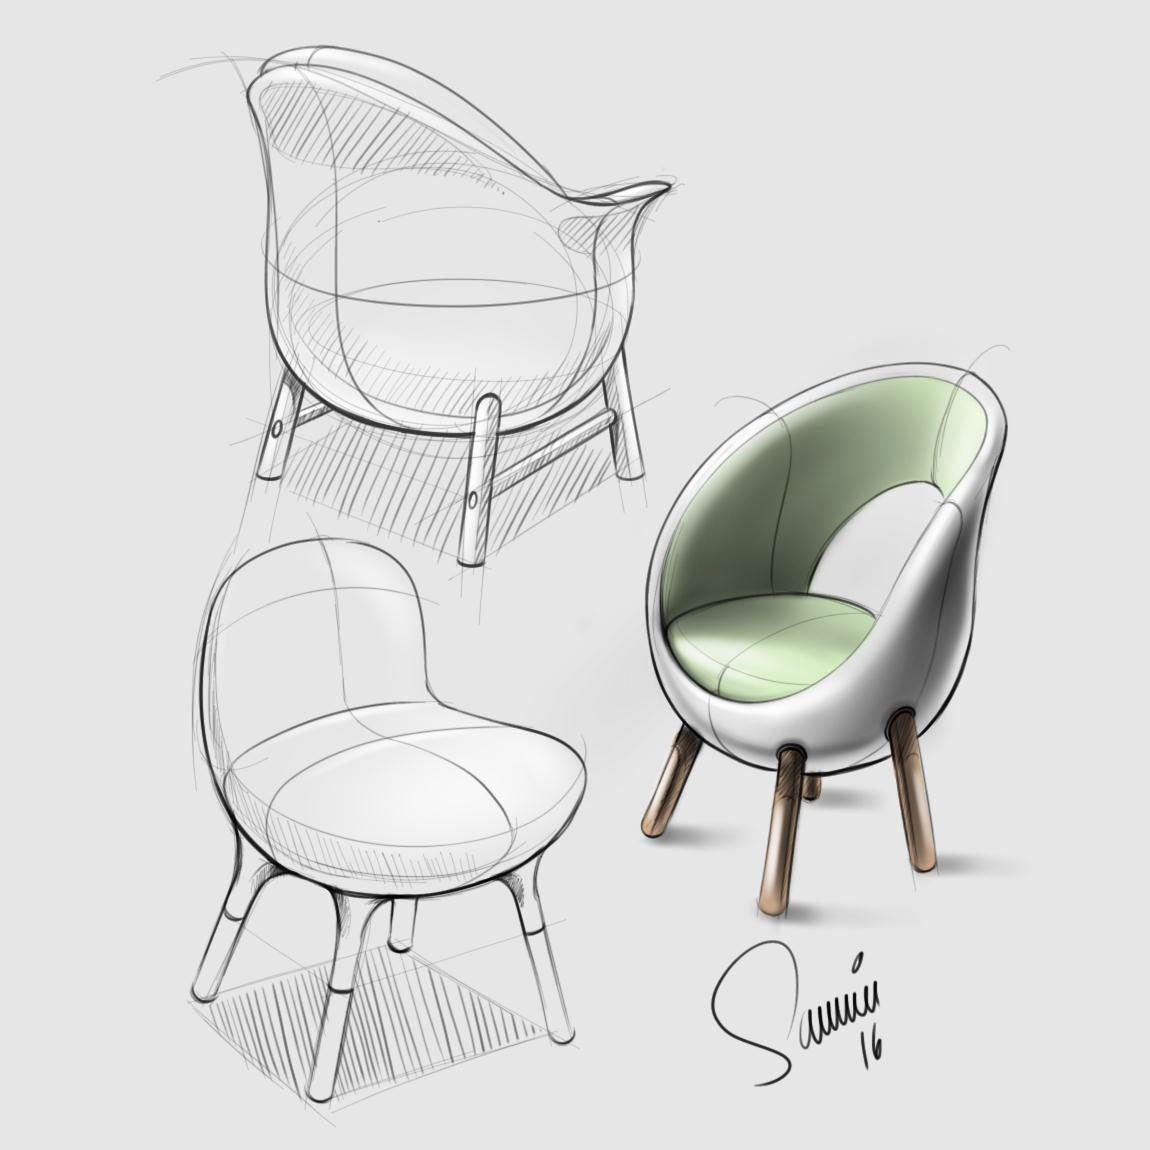 Furniture Sketches Product Design Sketchbook 2016 On Behance Furniture Sketching